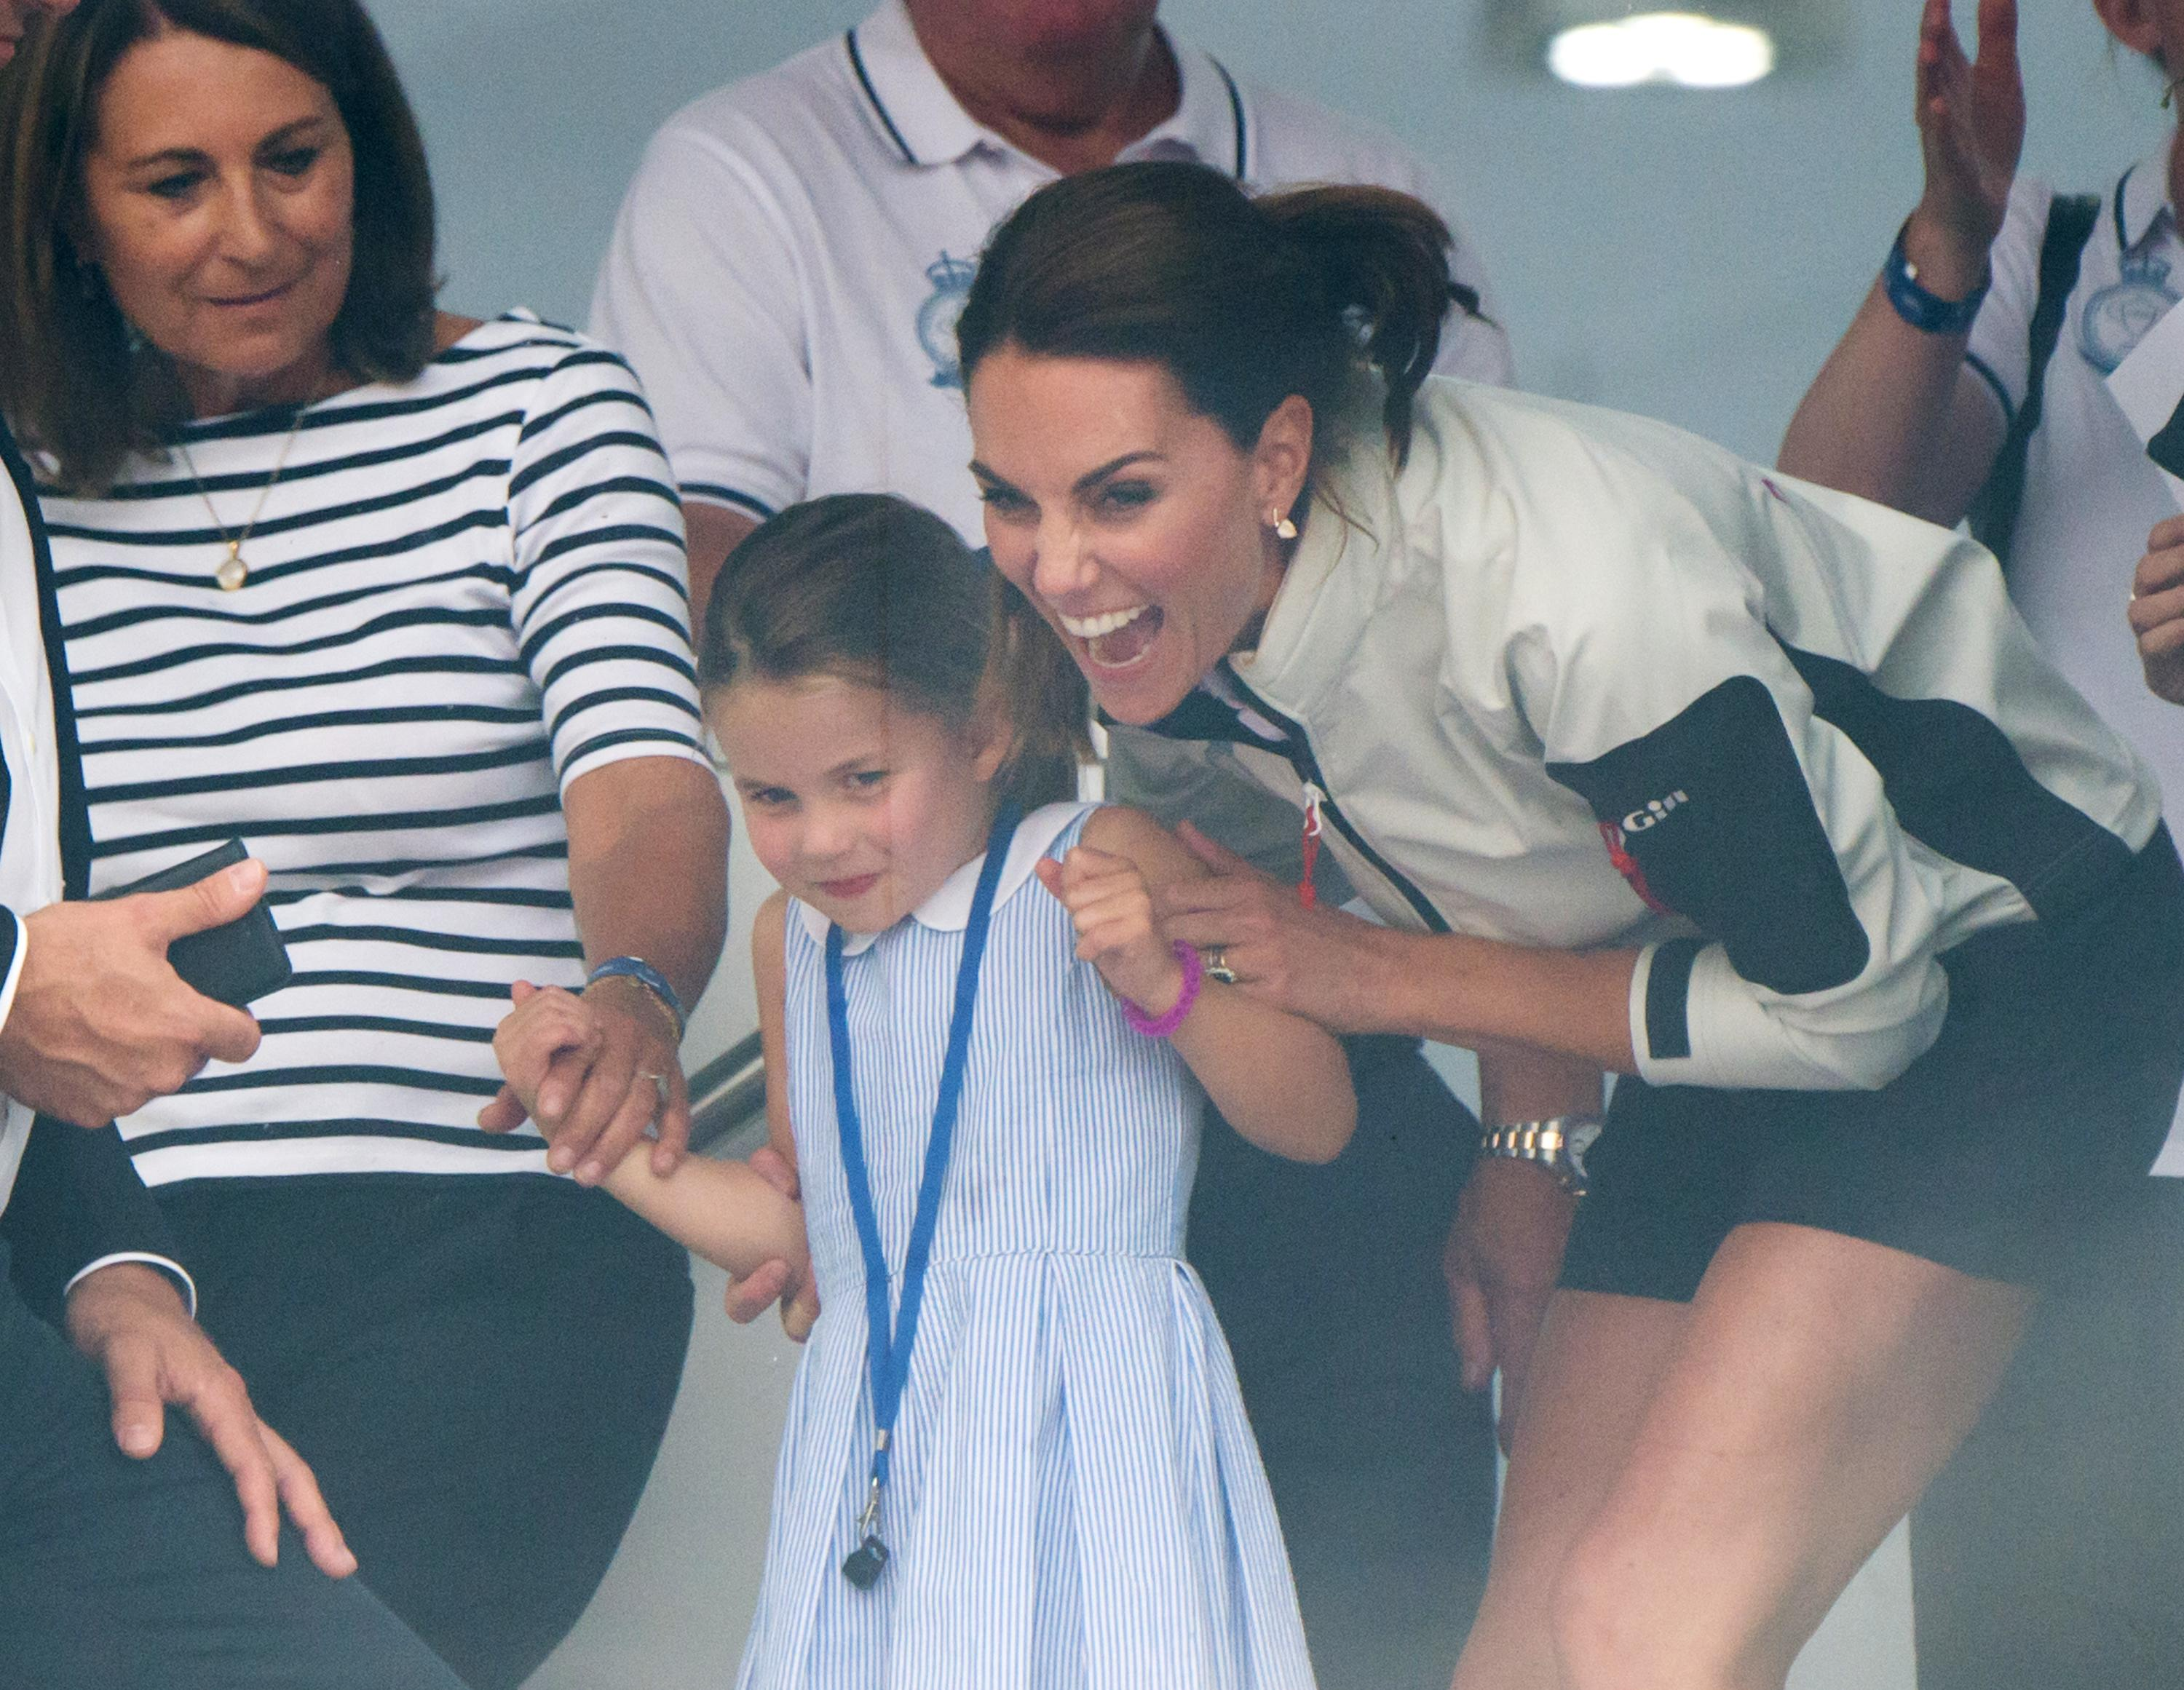 COWES, ENGLAND - AUGUST 08: Carole Middleton, Princess Charlotte and Catherine, Duchess of Cambridge attend the presentation following the King's Cup Regatta on August 08, 2019 in Cowes, England. (Photo by Samir Hussein/WireImage)